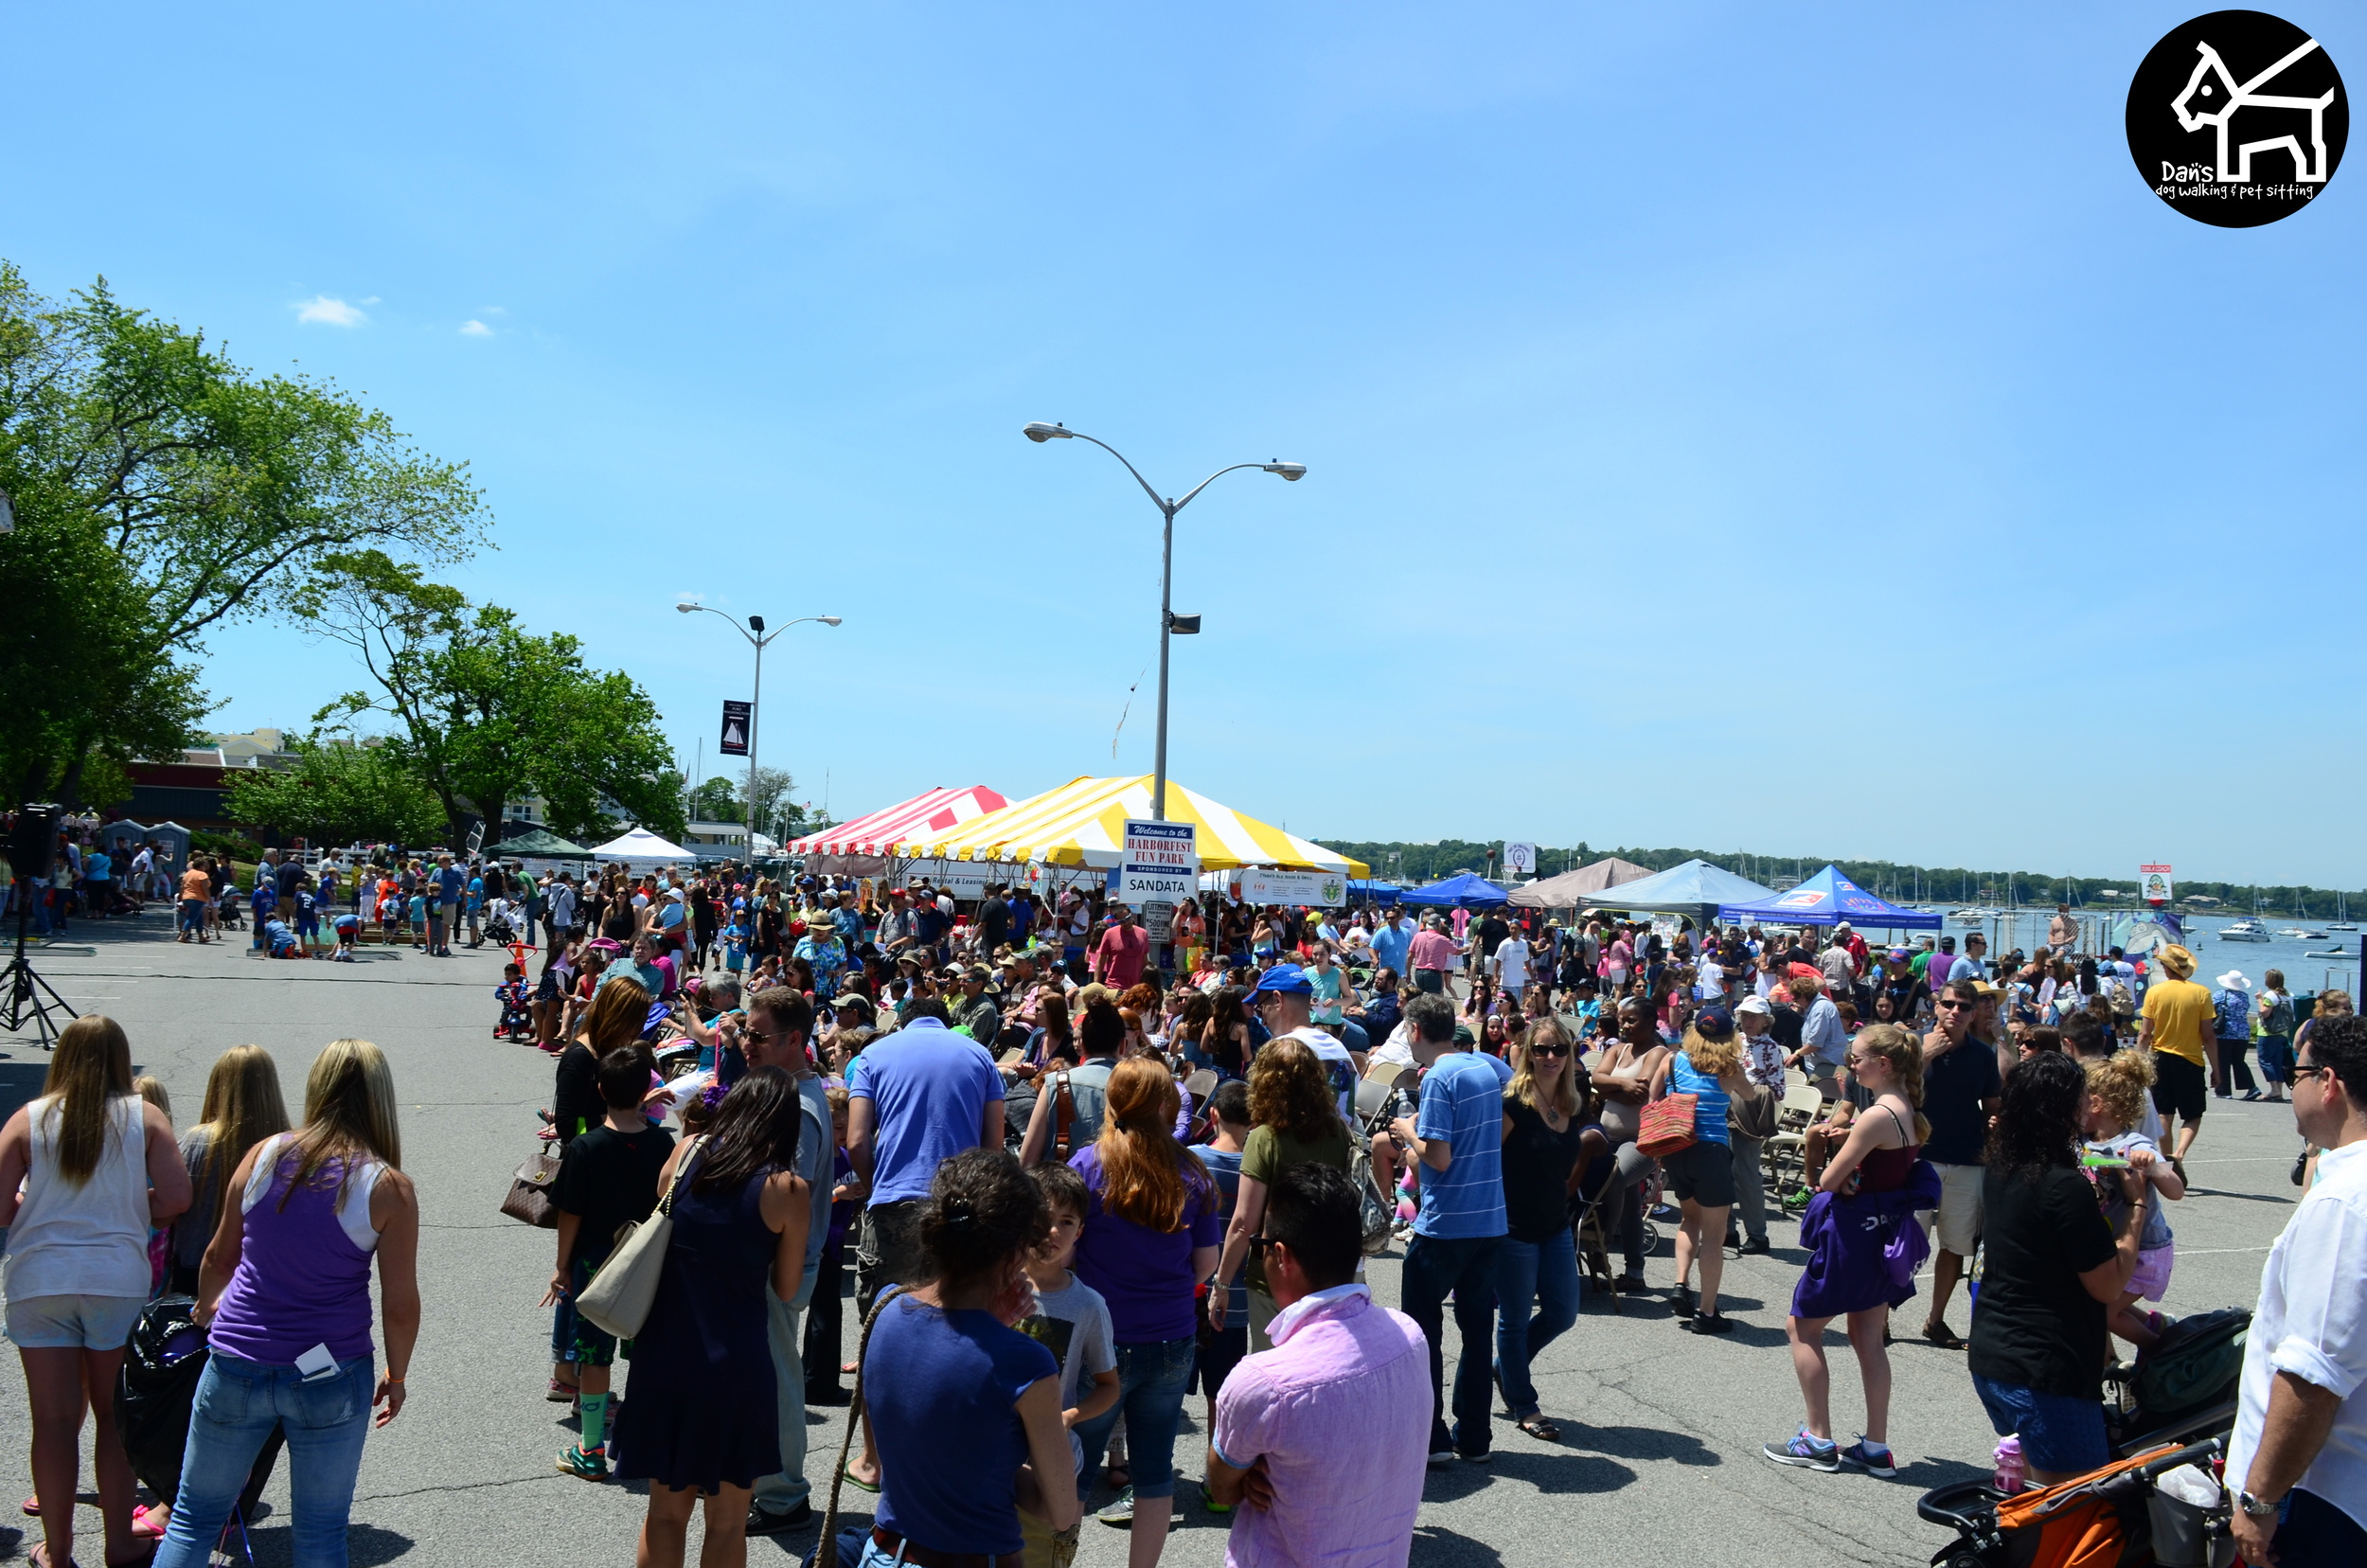 Everyone enjoying the day at Harbor Fest 2015.jpg